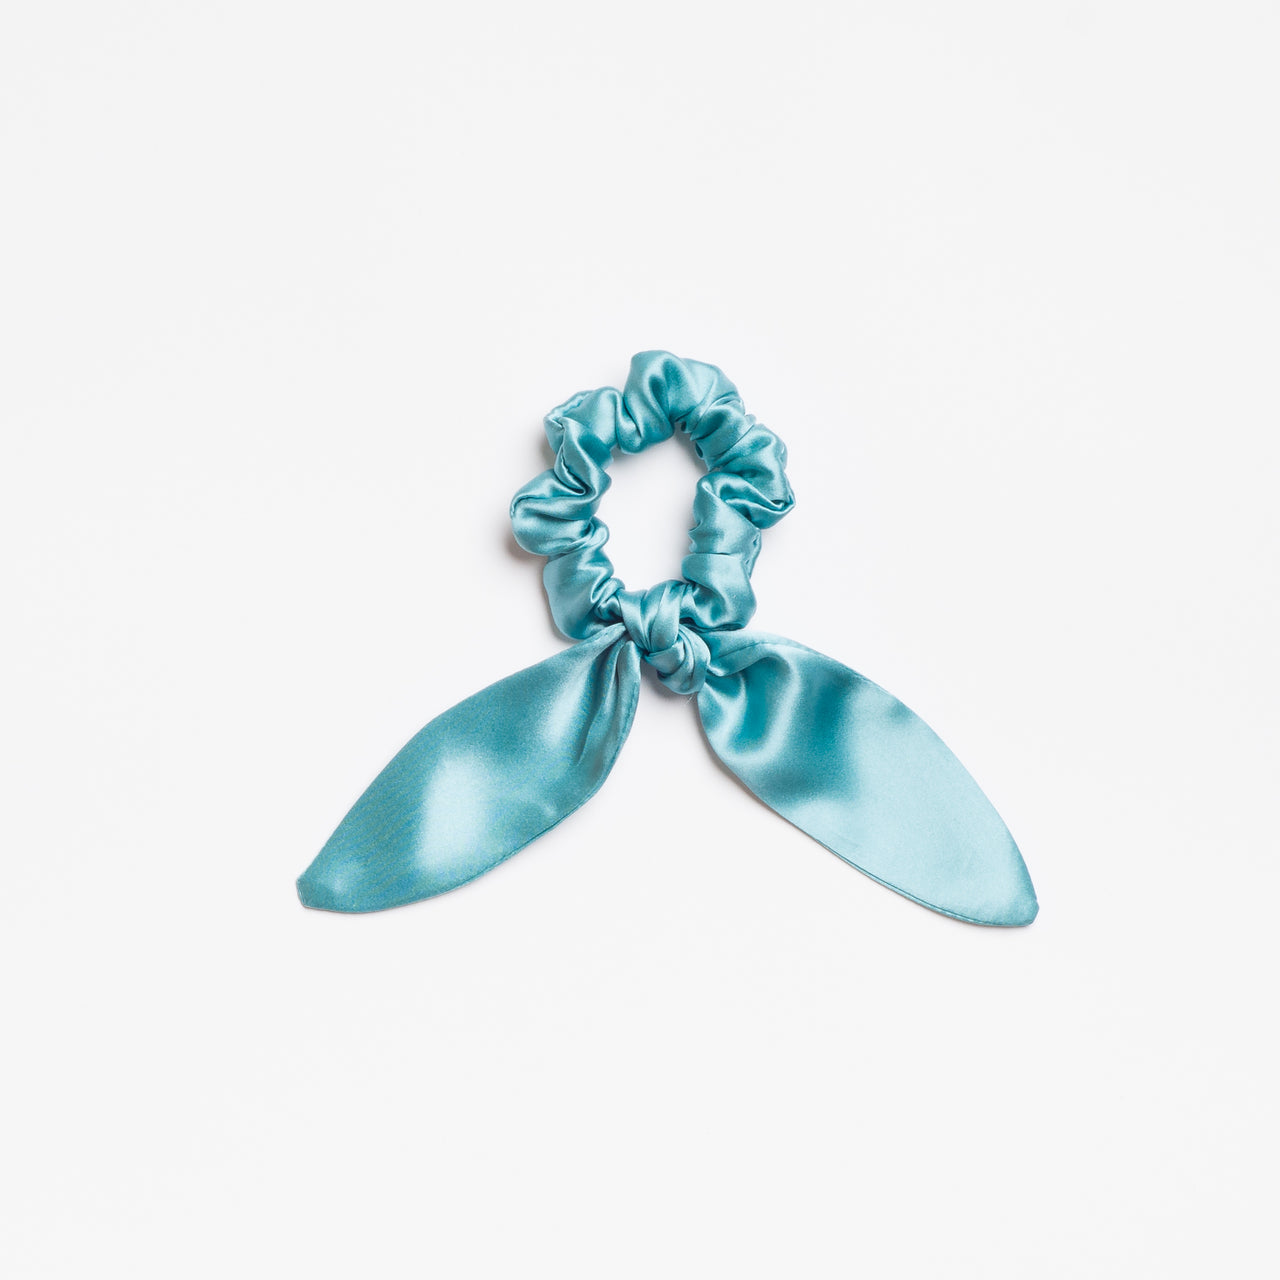 The Tiffany